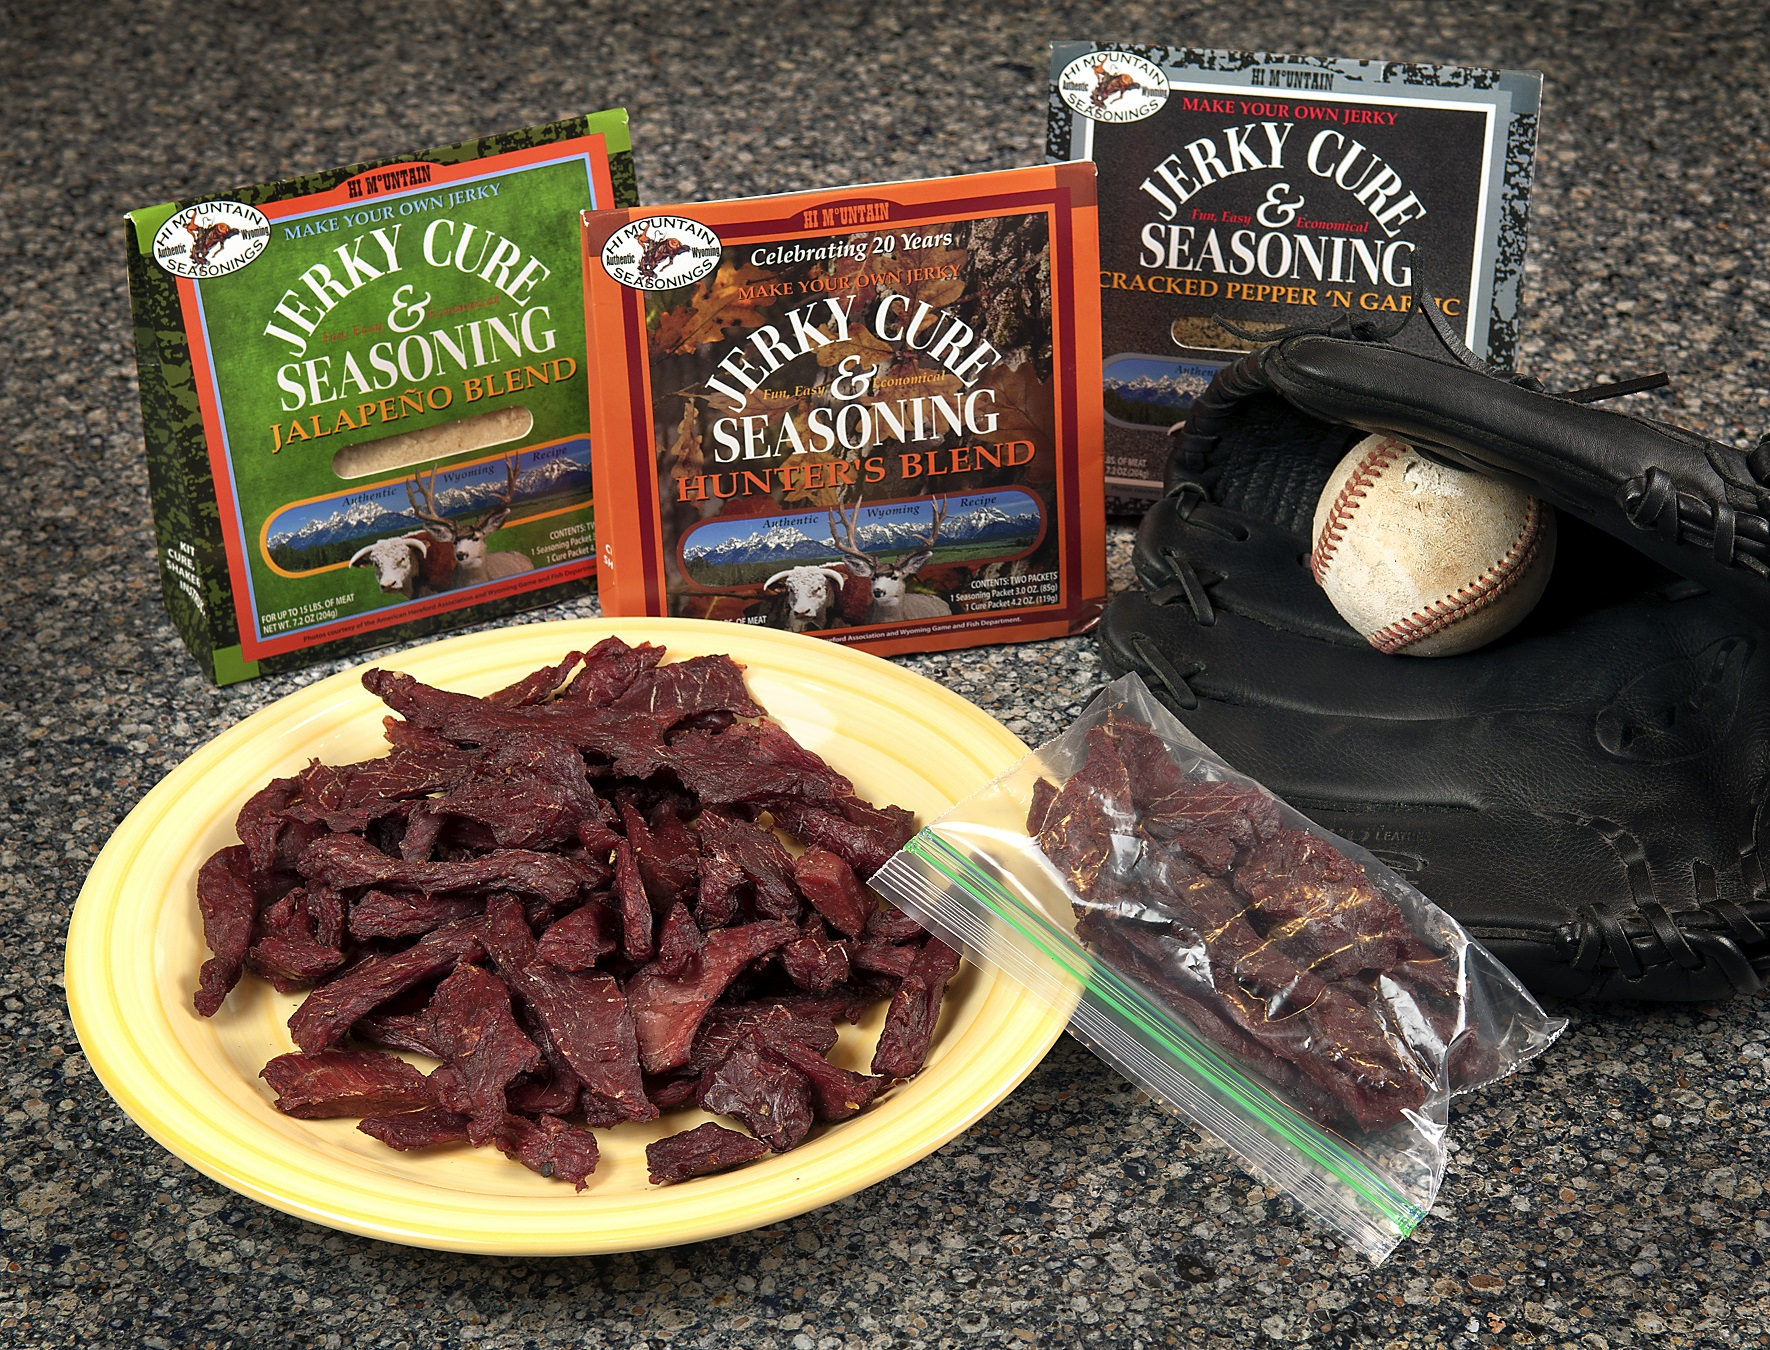 How to make jerky seasoning and cure